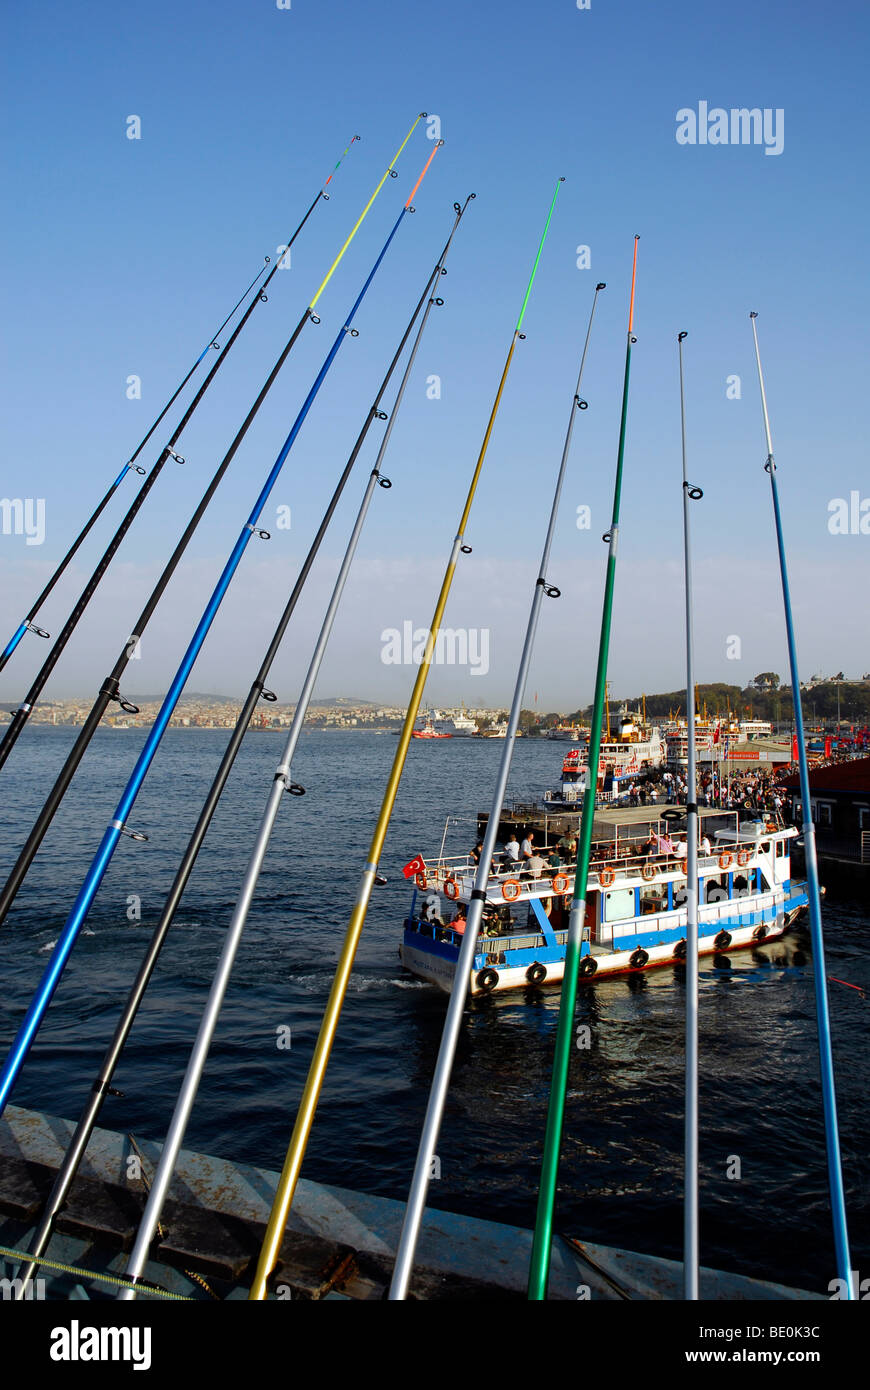 Fishing Rods On Back Fishing Stock Photos & Fishing Rods On Back ...